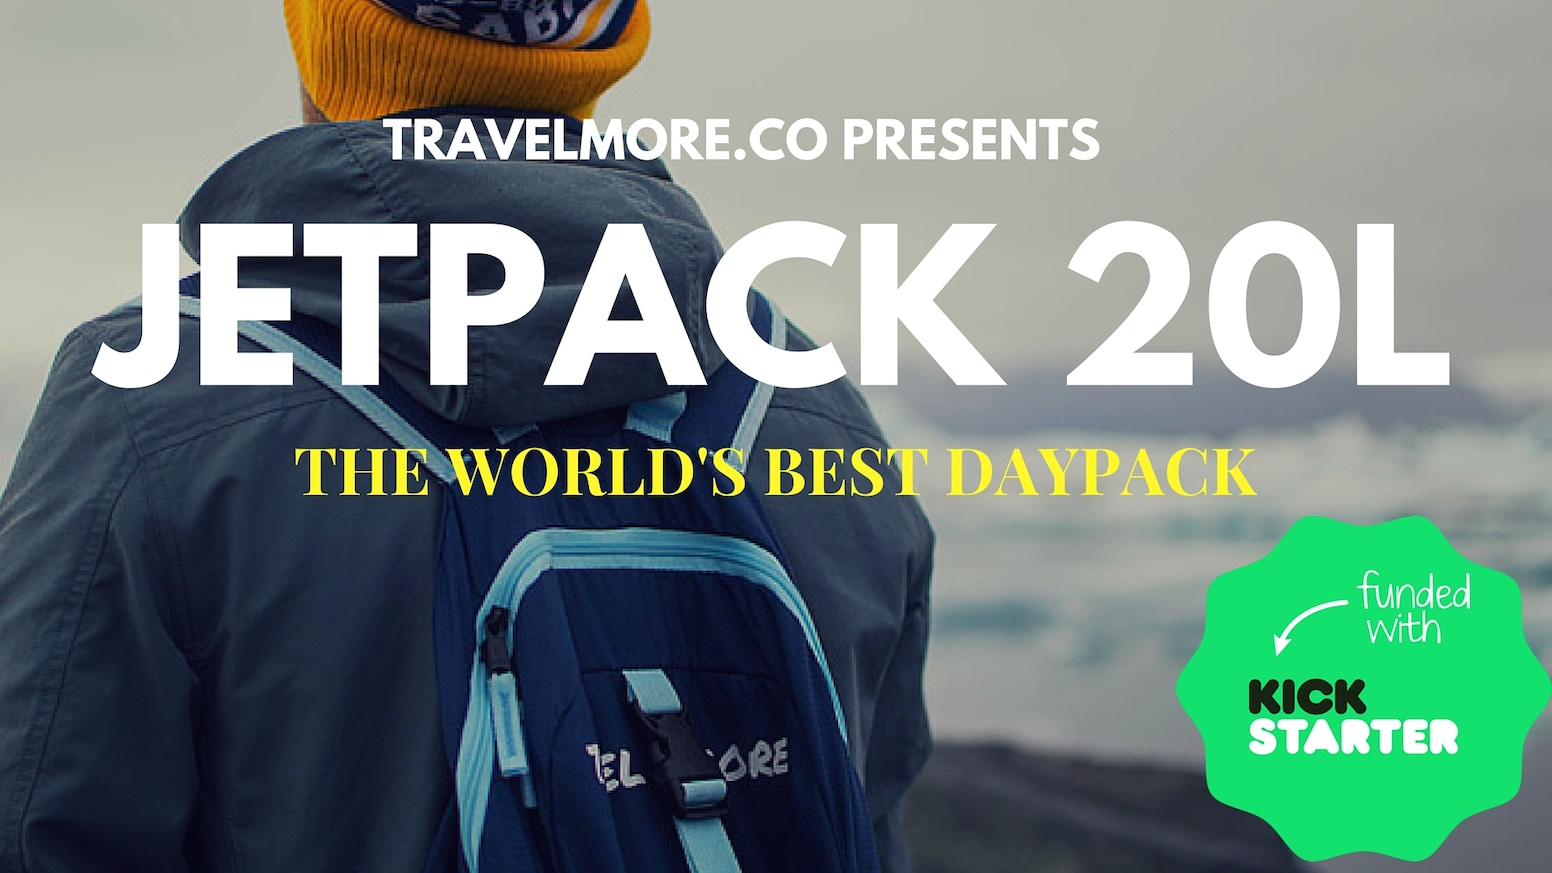 The world's best travel daypack, designed by travelers for travelers. Backed by a no questions asked, 365 YEAR warranty.